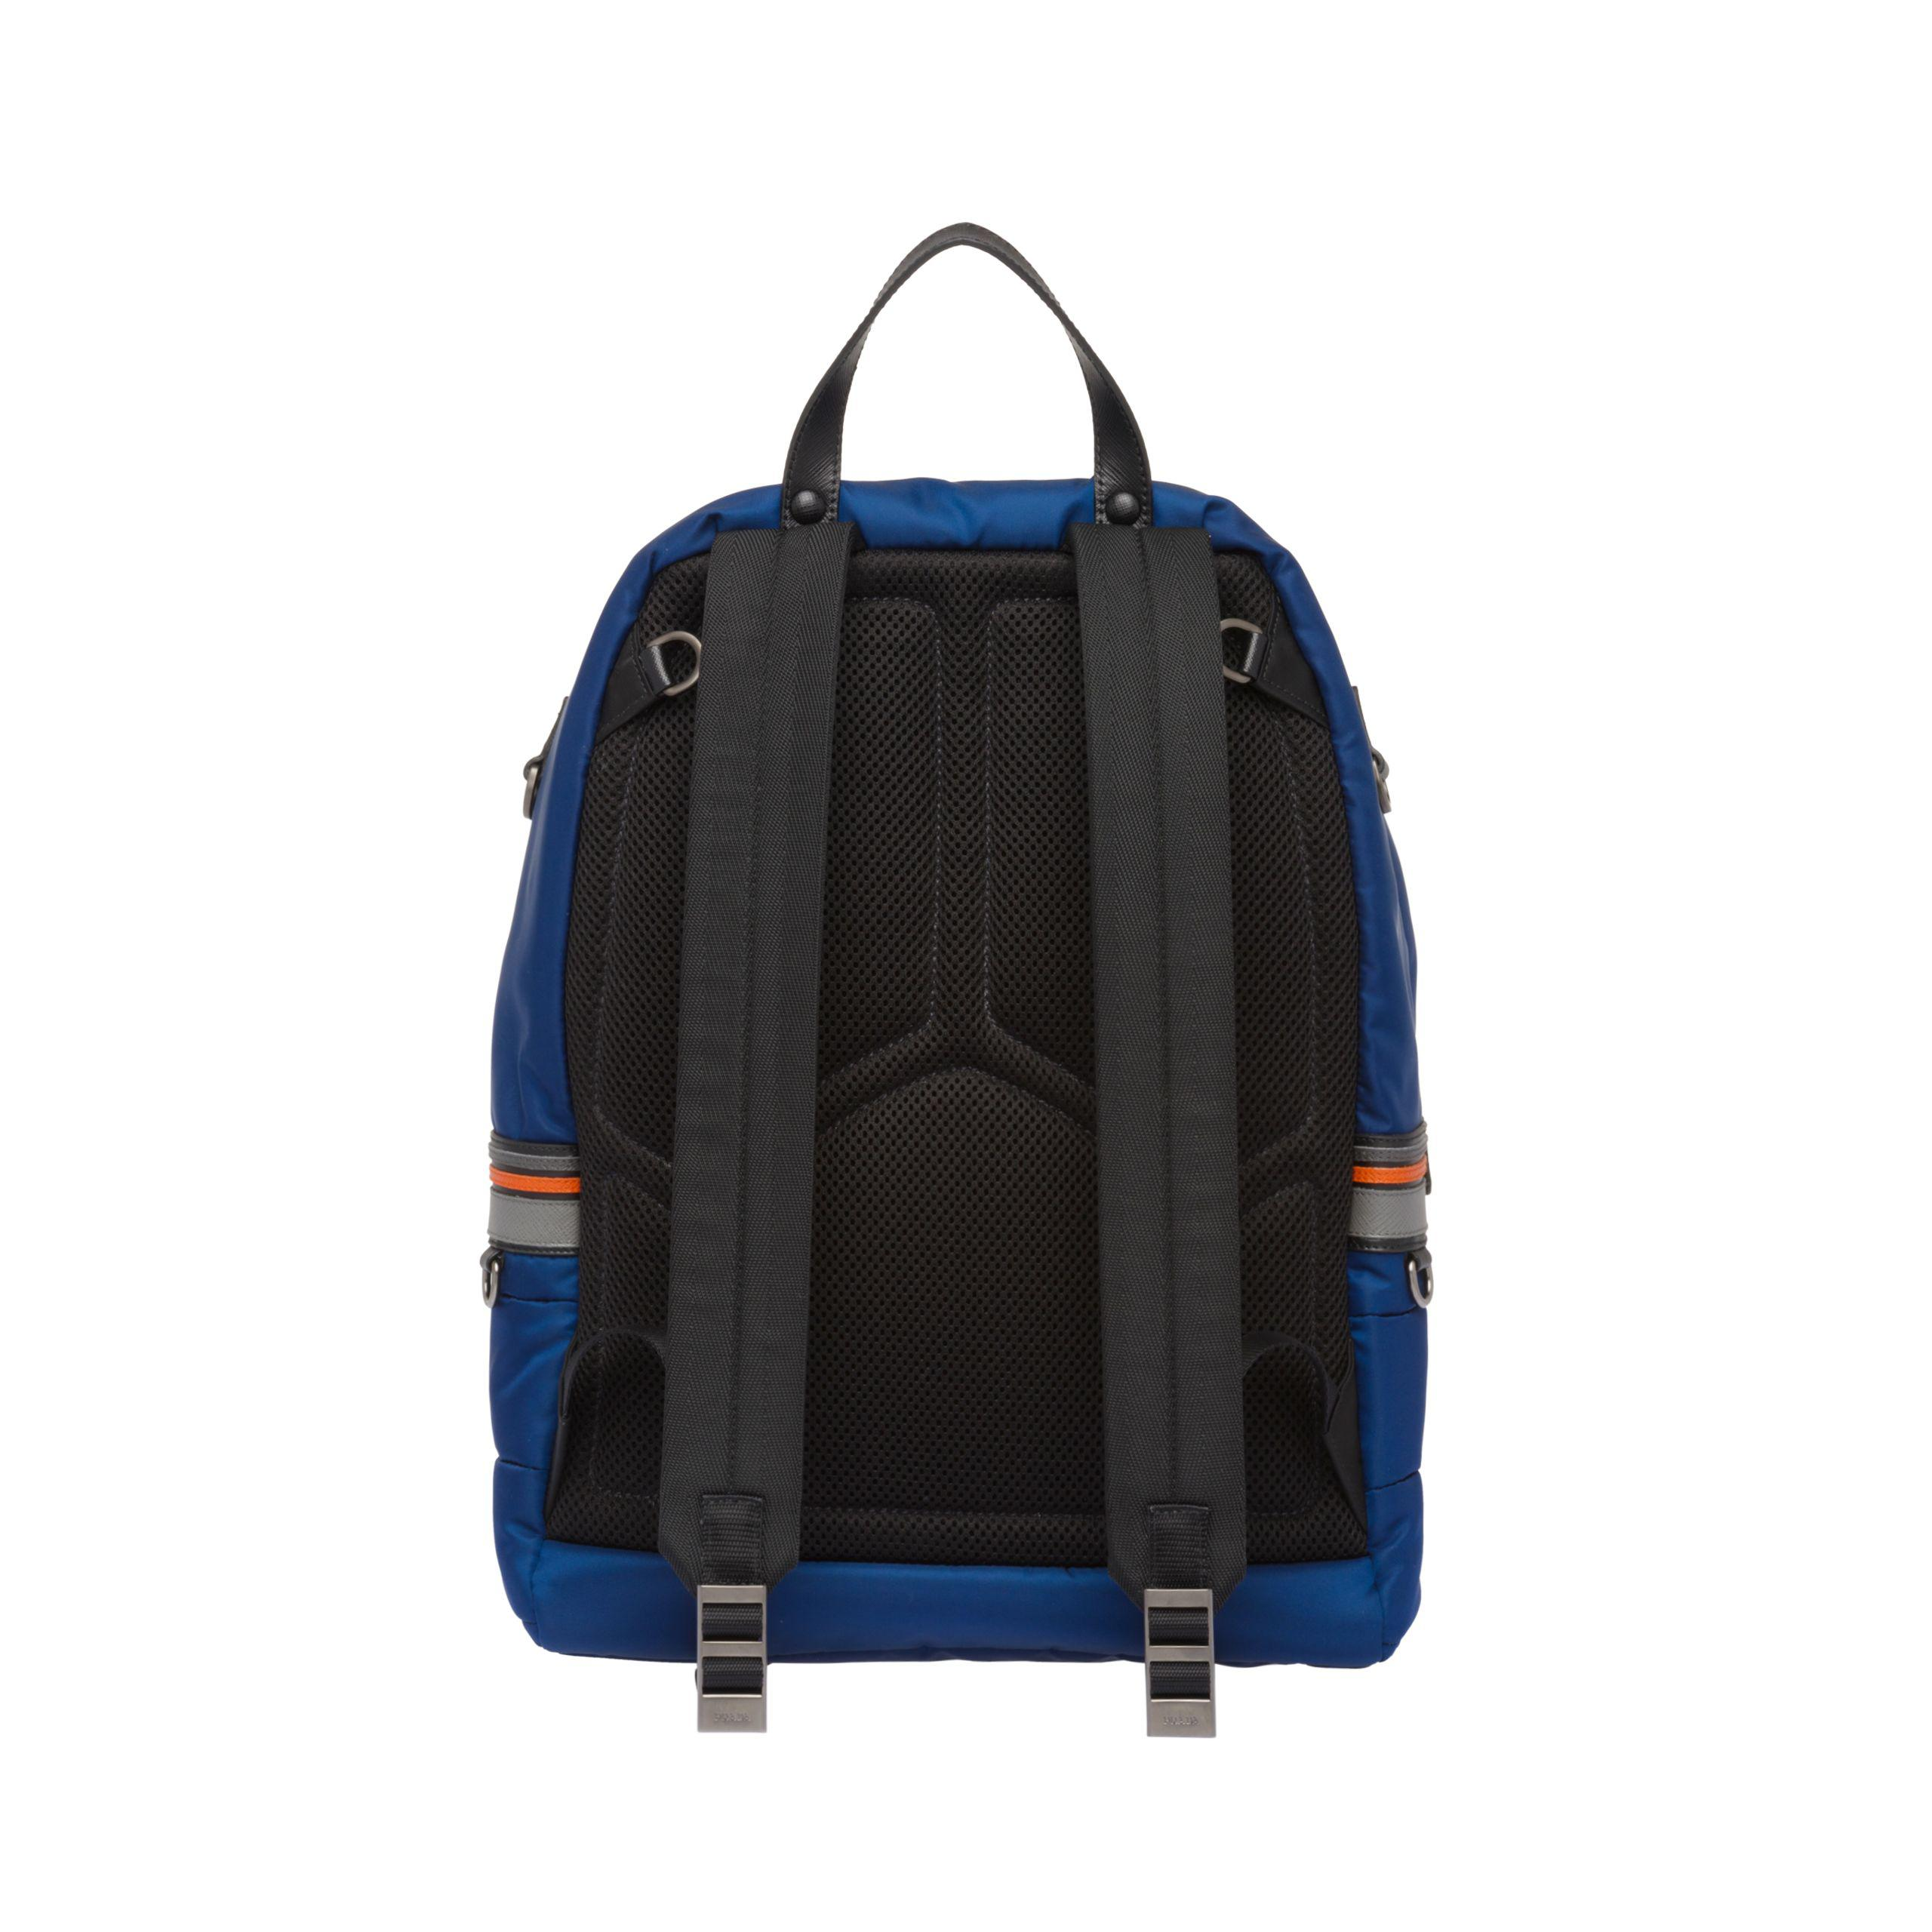 b28aea817610 ... black eb60f 0be54; switzerland prada blue nylon and saffiano leather  backpack for men lyst. view fullscreen 10df0 5754b